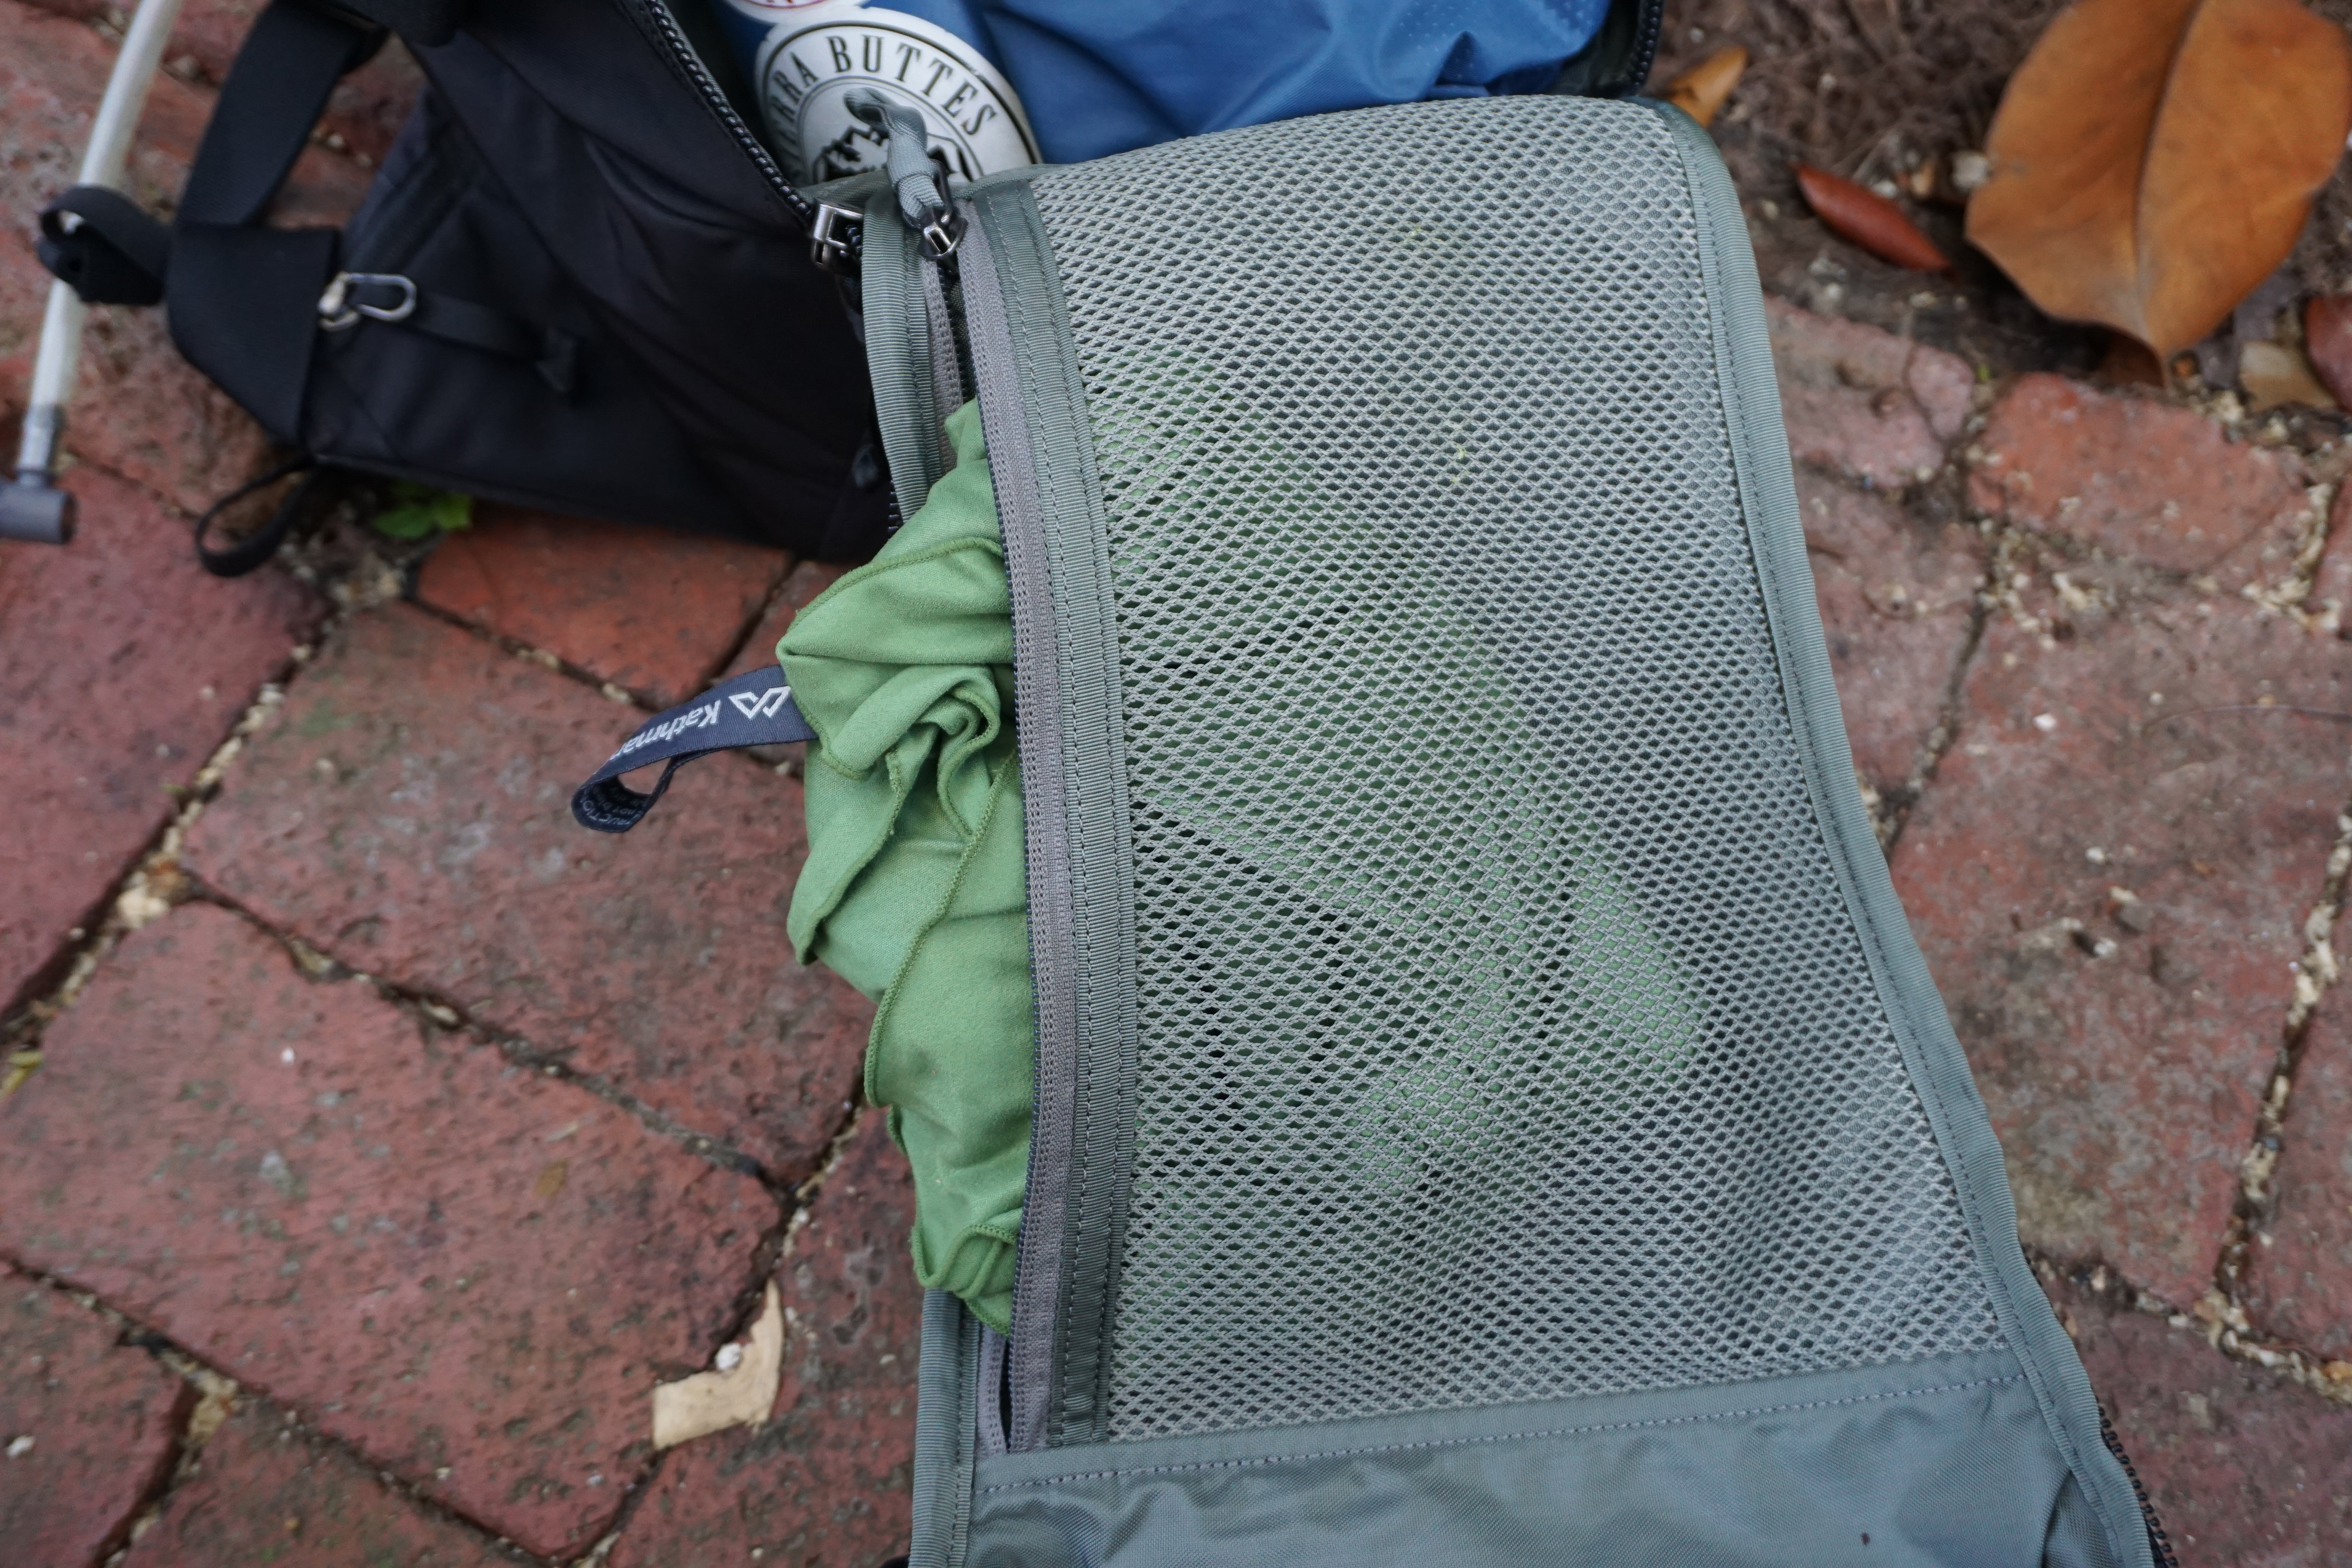 EVERGOODS MPL 30 Backpack main compartment mesh pocket